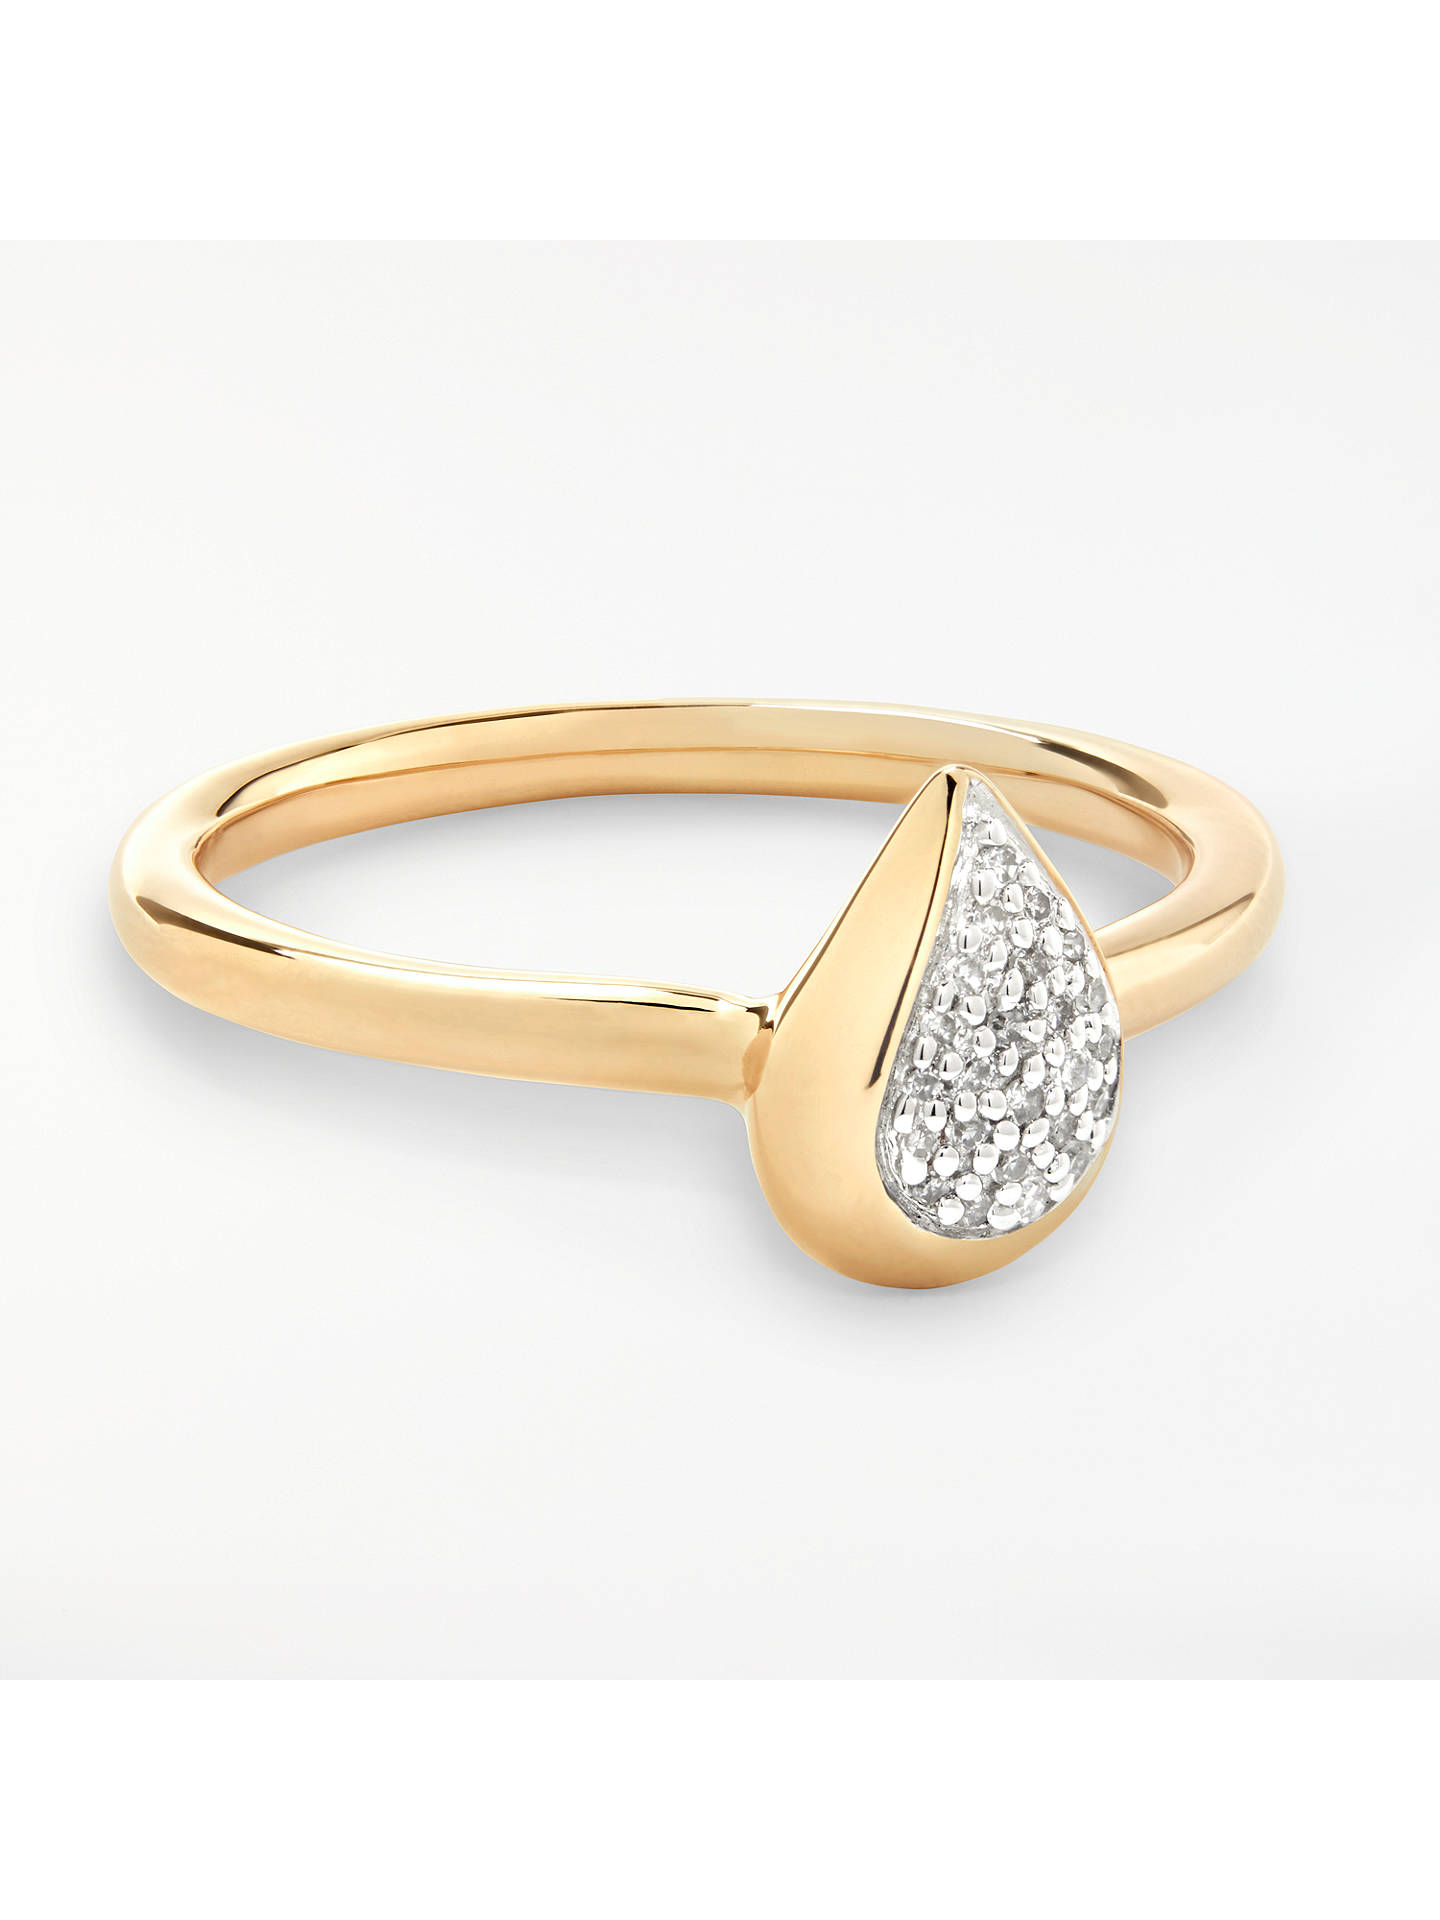 BuyModern Rarity Diamond Teardrop Ring, Gold, L Online at johnlewis.com